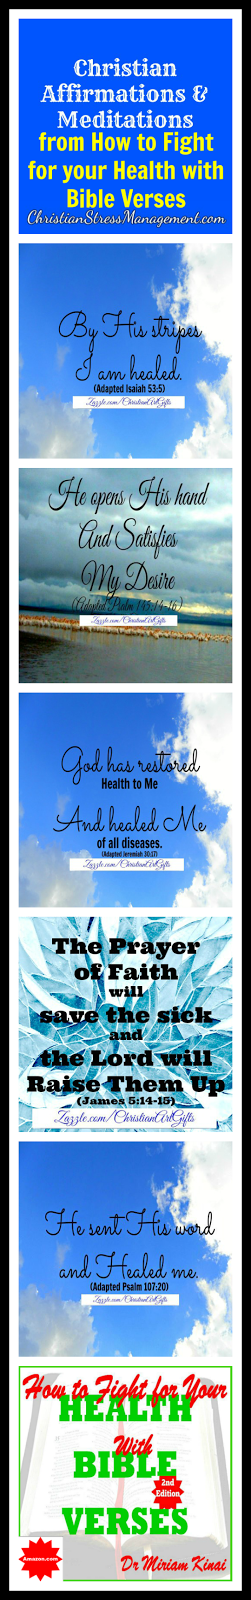 Christian affirmations and meditations for your health